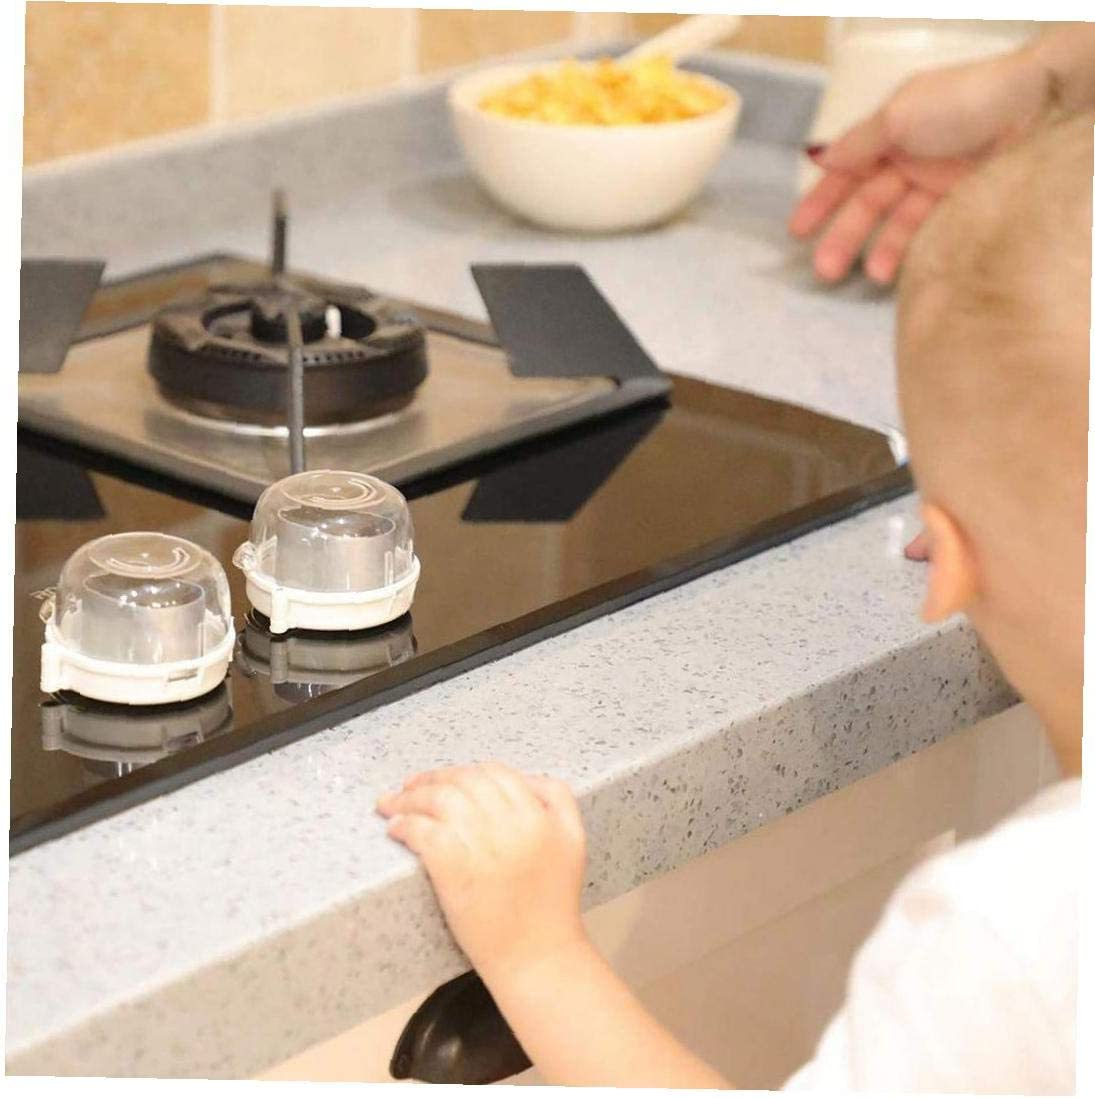 Kitchen Gas Stove Knob Covers 6PCS Kitchen Transparent Gas Stove Knob Covers Oven Knobs Protector Child Safety Locks Gas Cooker Switch Protective Cover for Children